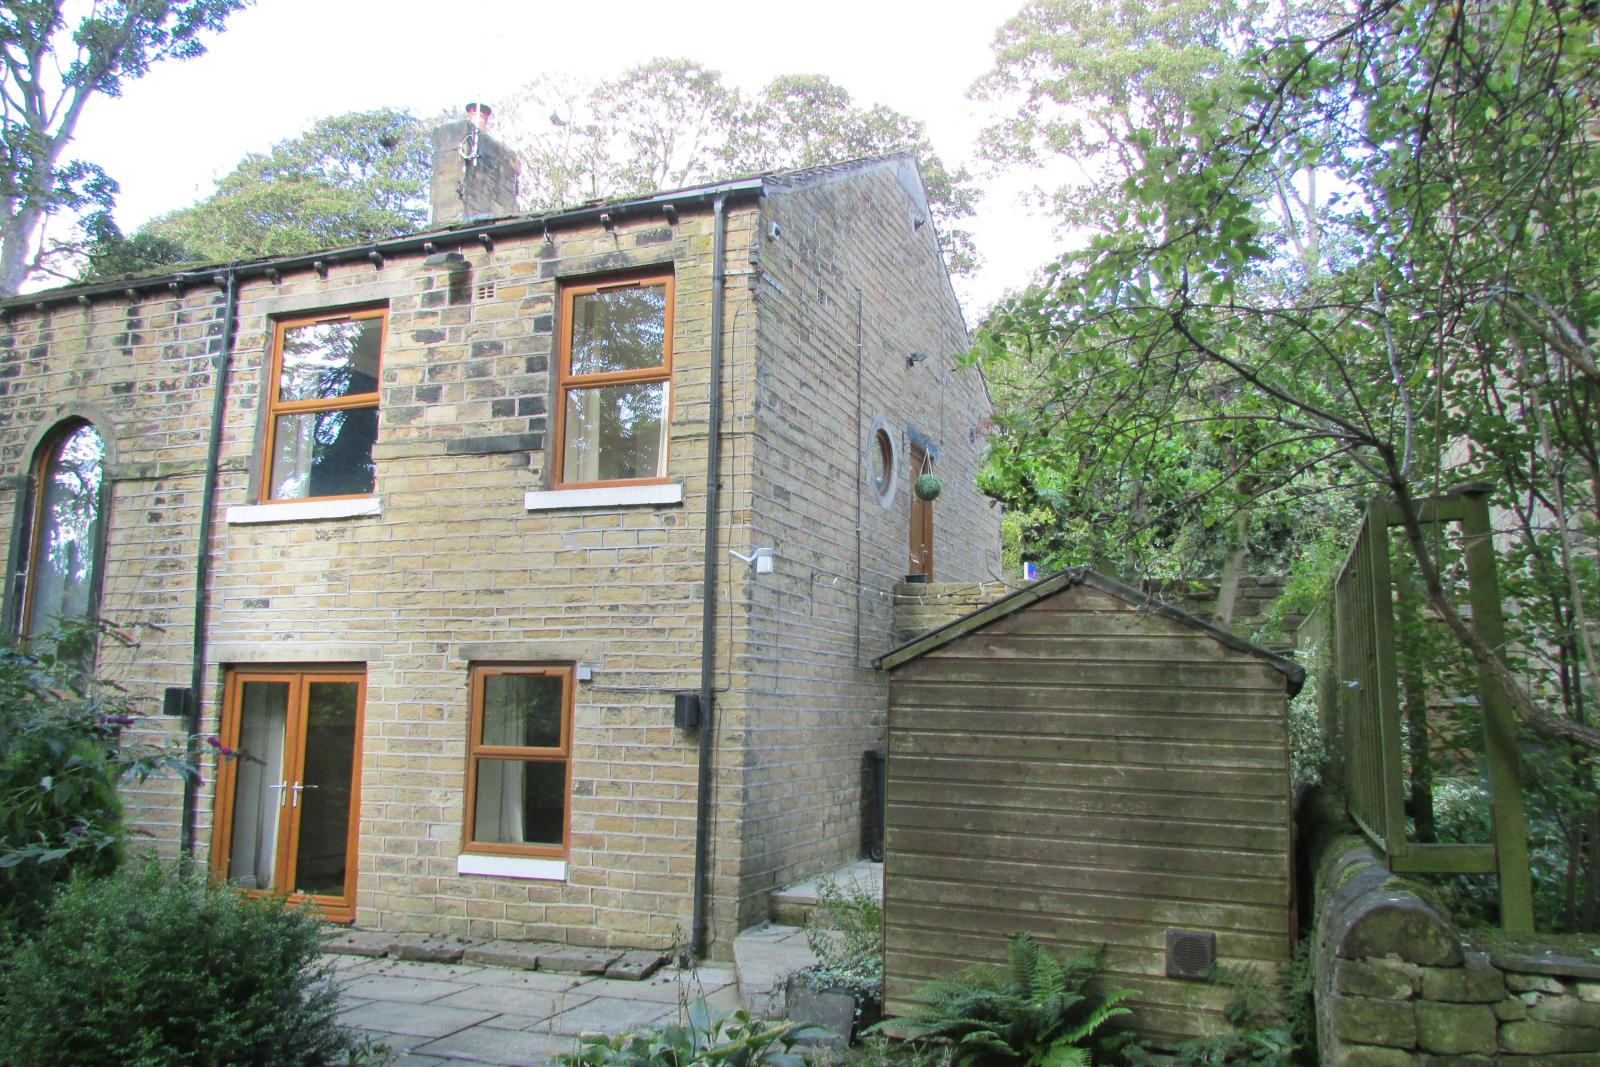 6 North Road, Kirkburton, Huddersfield HD8 0PA